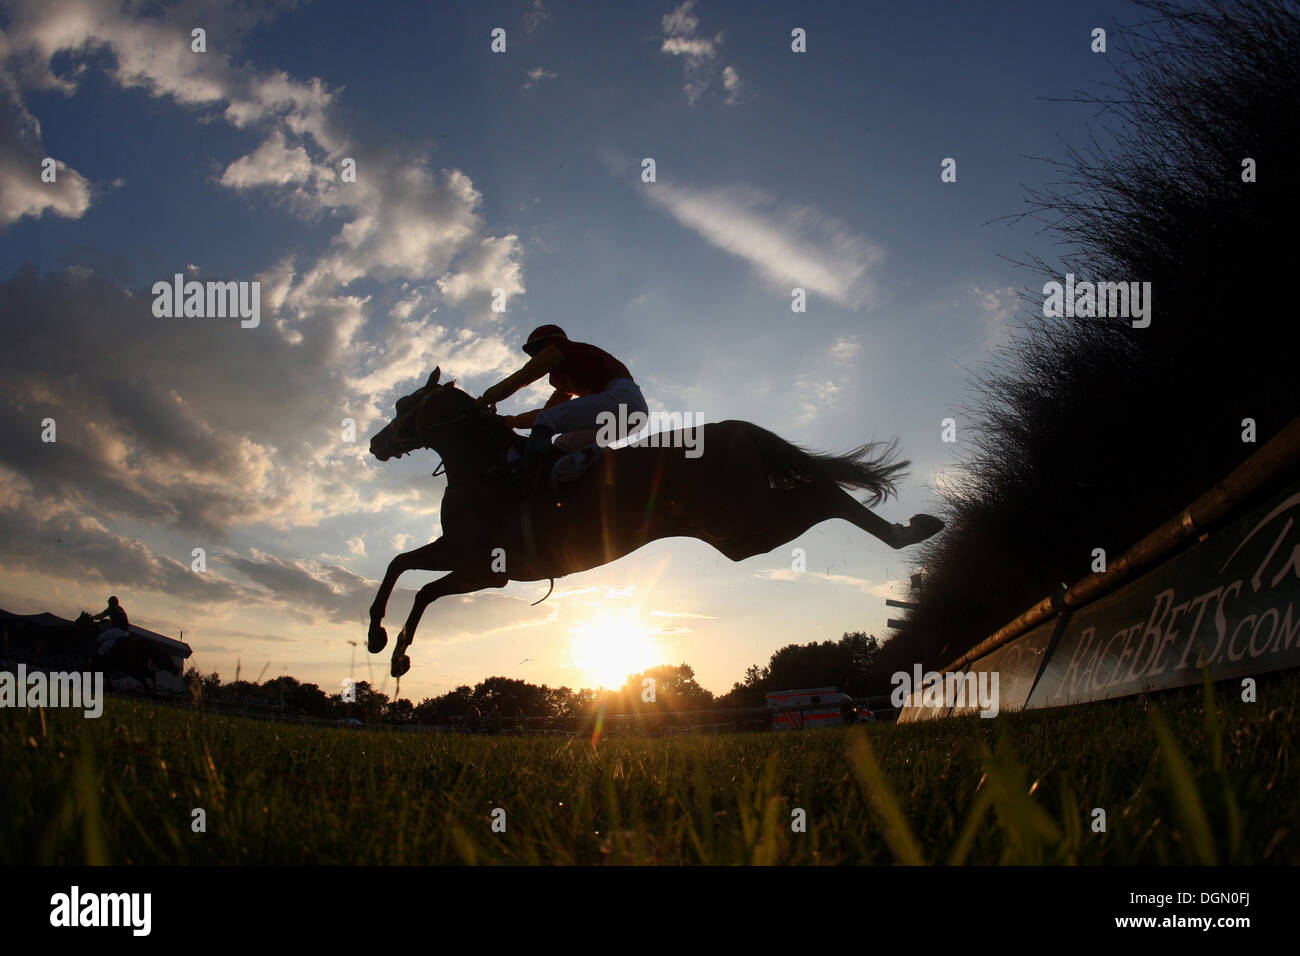 Hanovre, Allemagne, silhouette, horse and jockey sautant par-dessus un obstacle Photo Stock